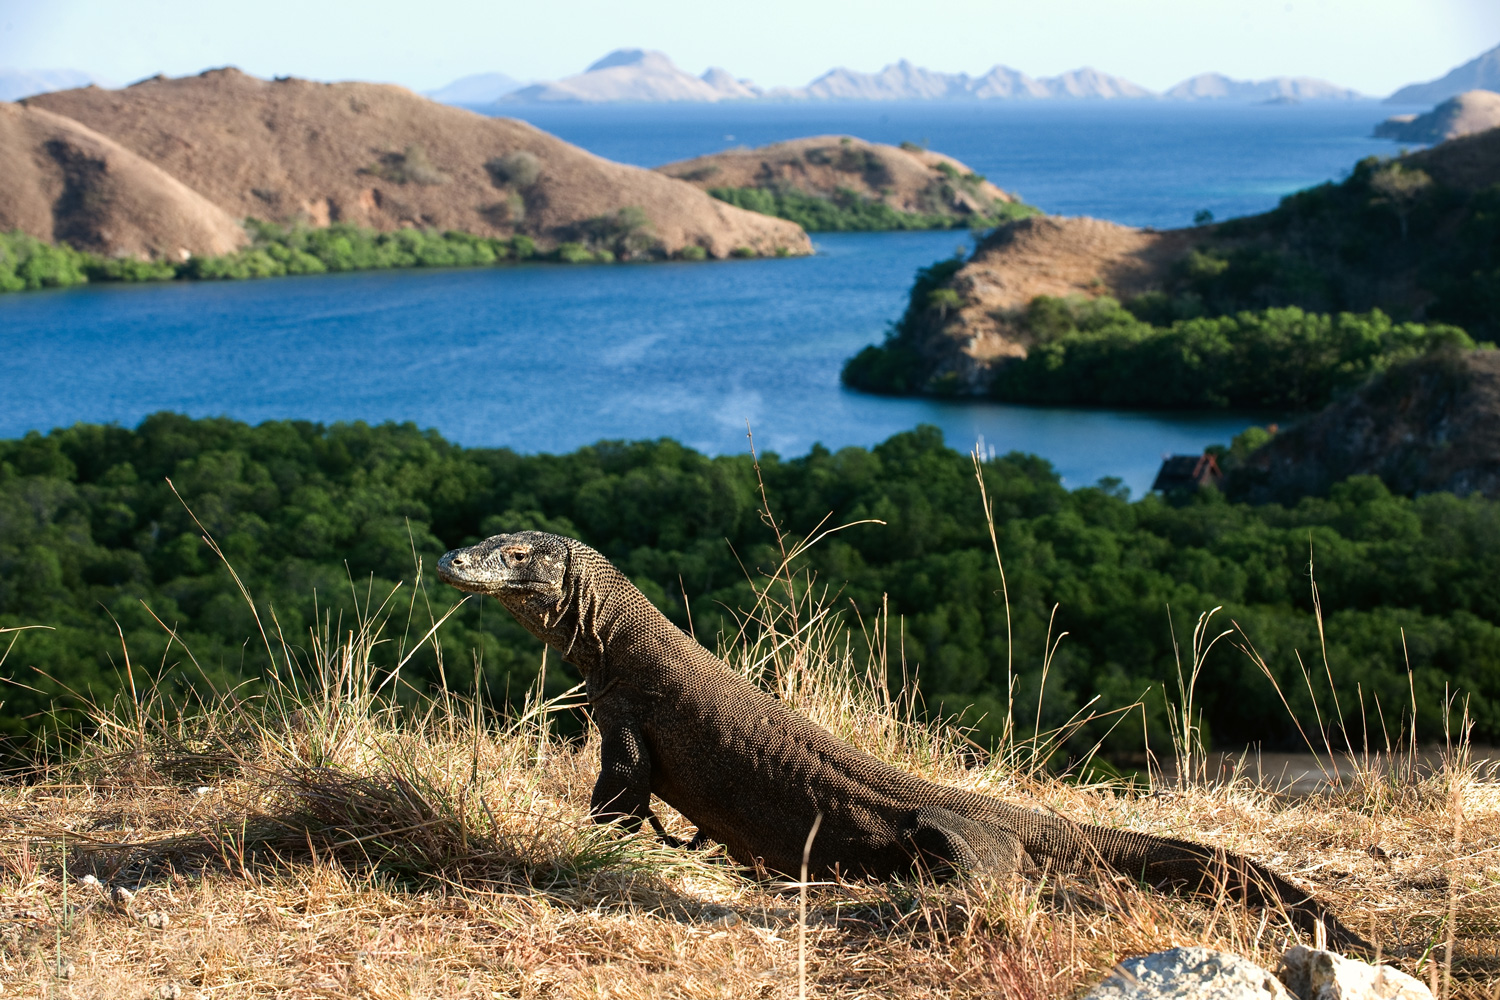 Komodo Dragon bathing in sunlight